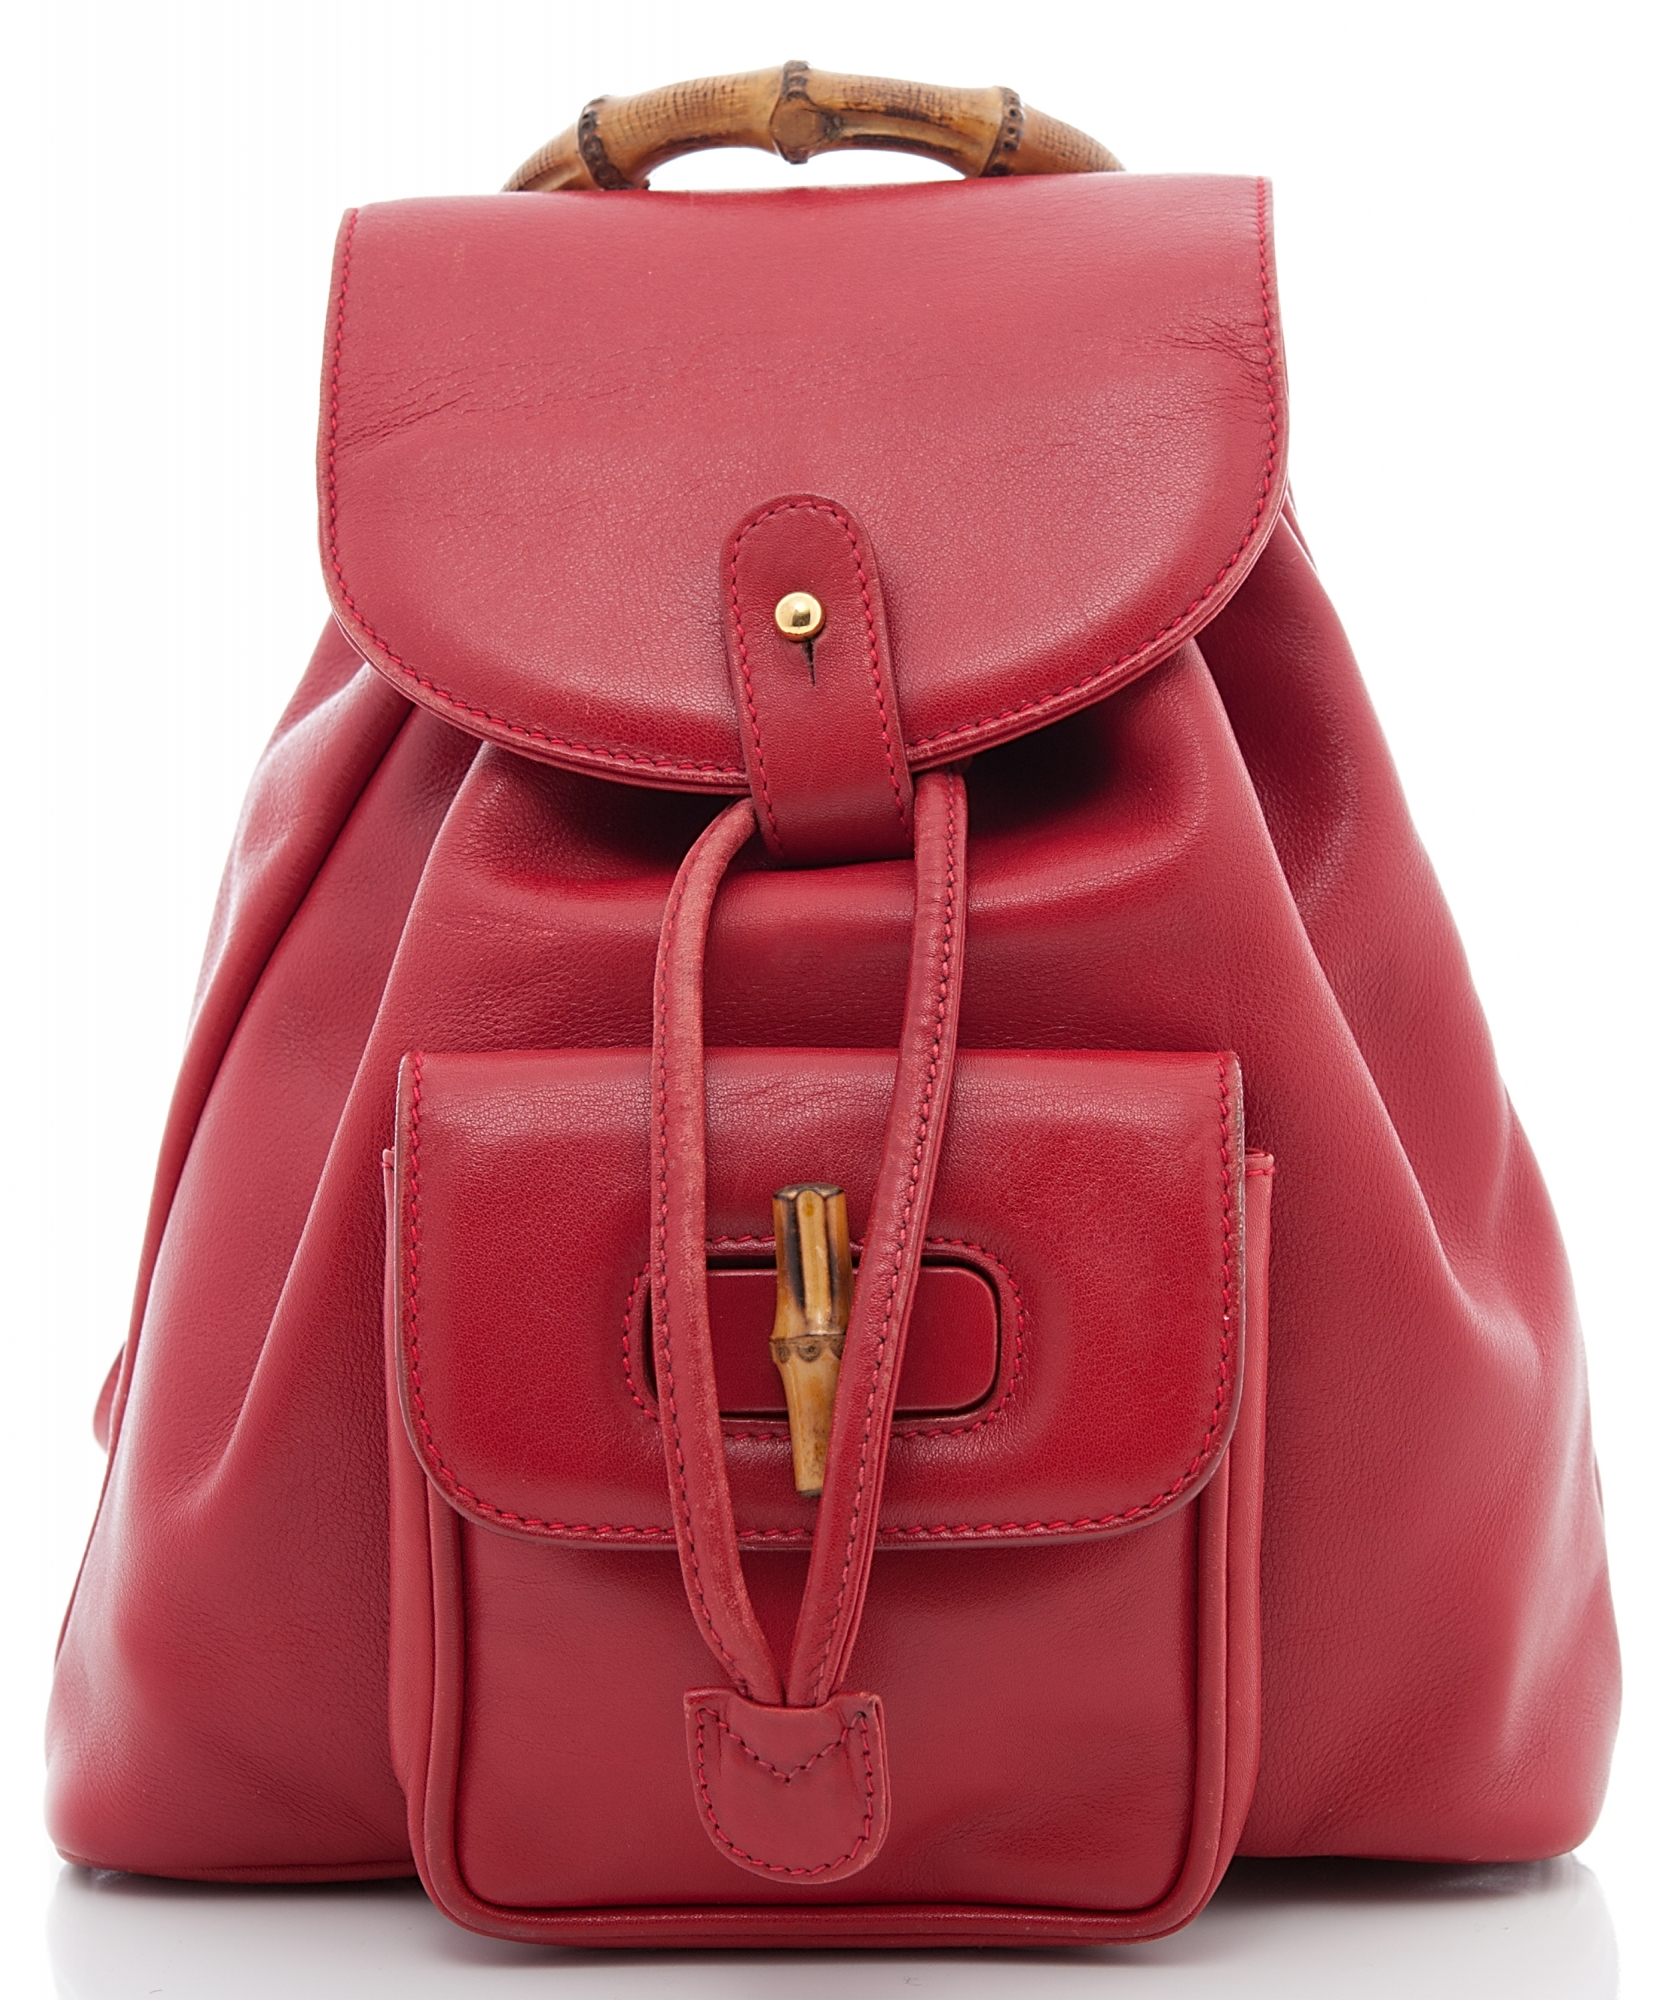 Gucci Red Leather Drawstring Bamboo Handle Backpack